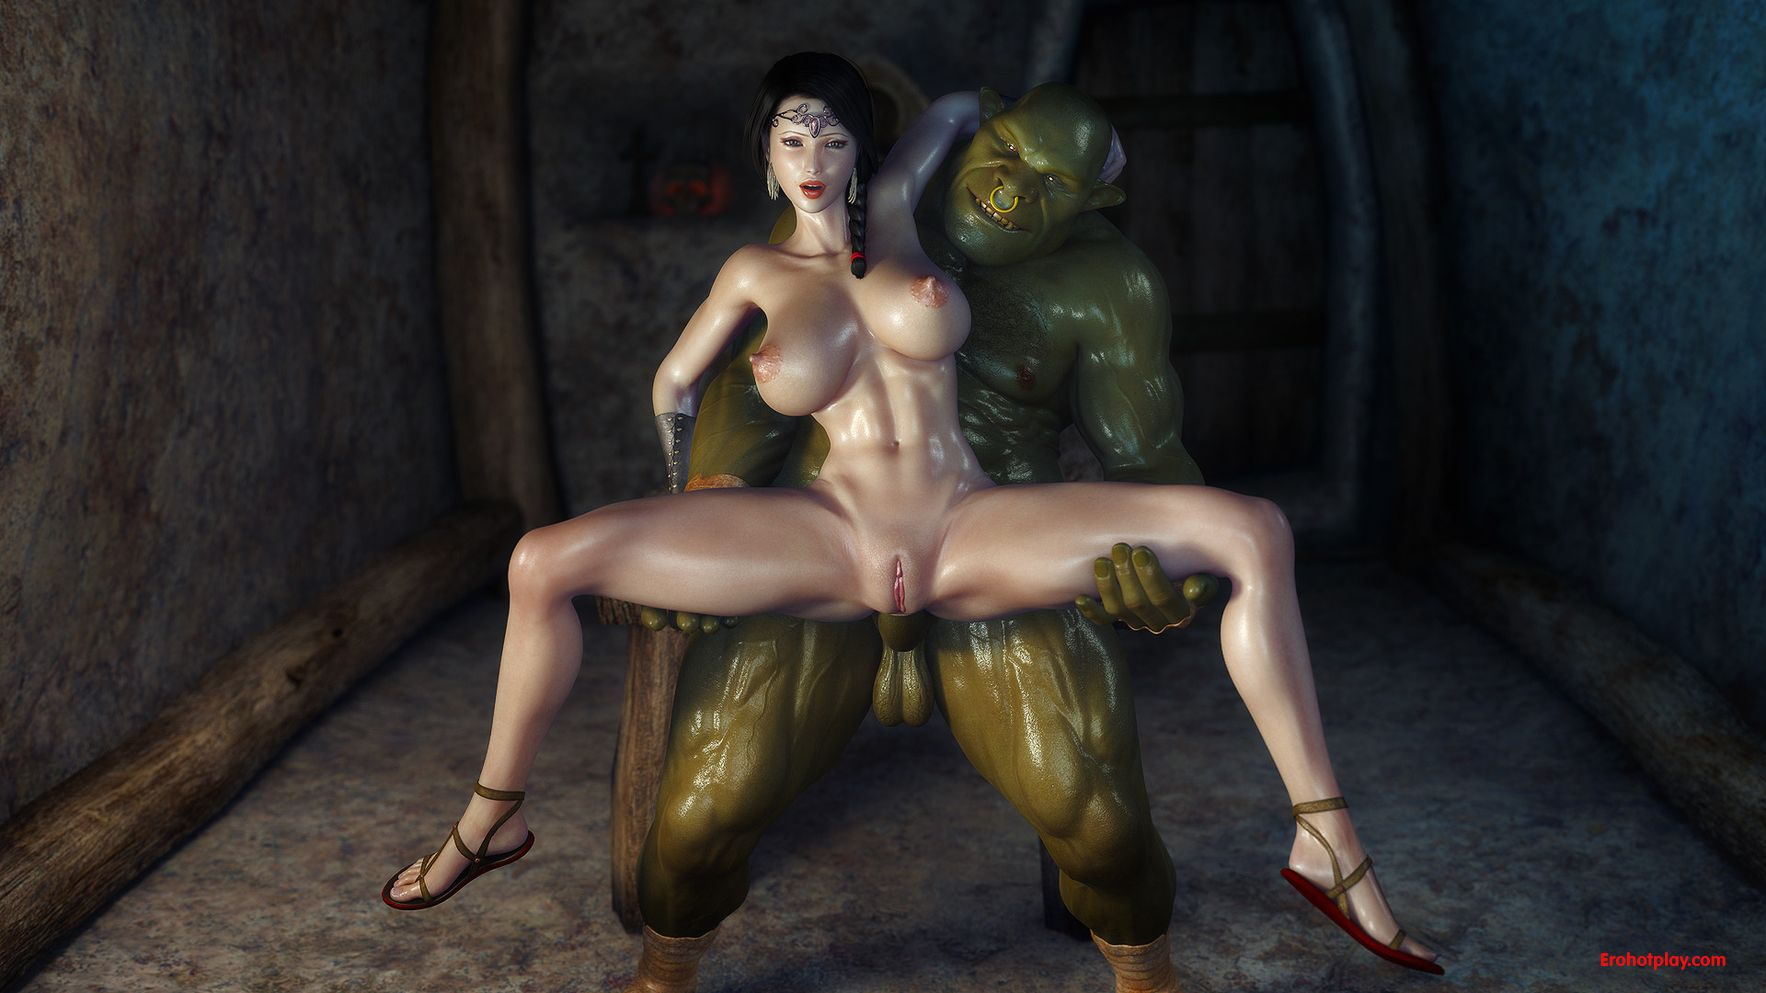 Ogre anime porn erotic video